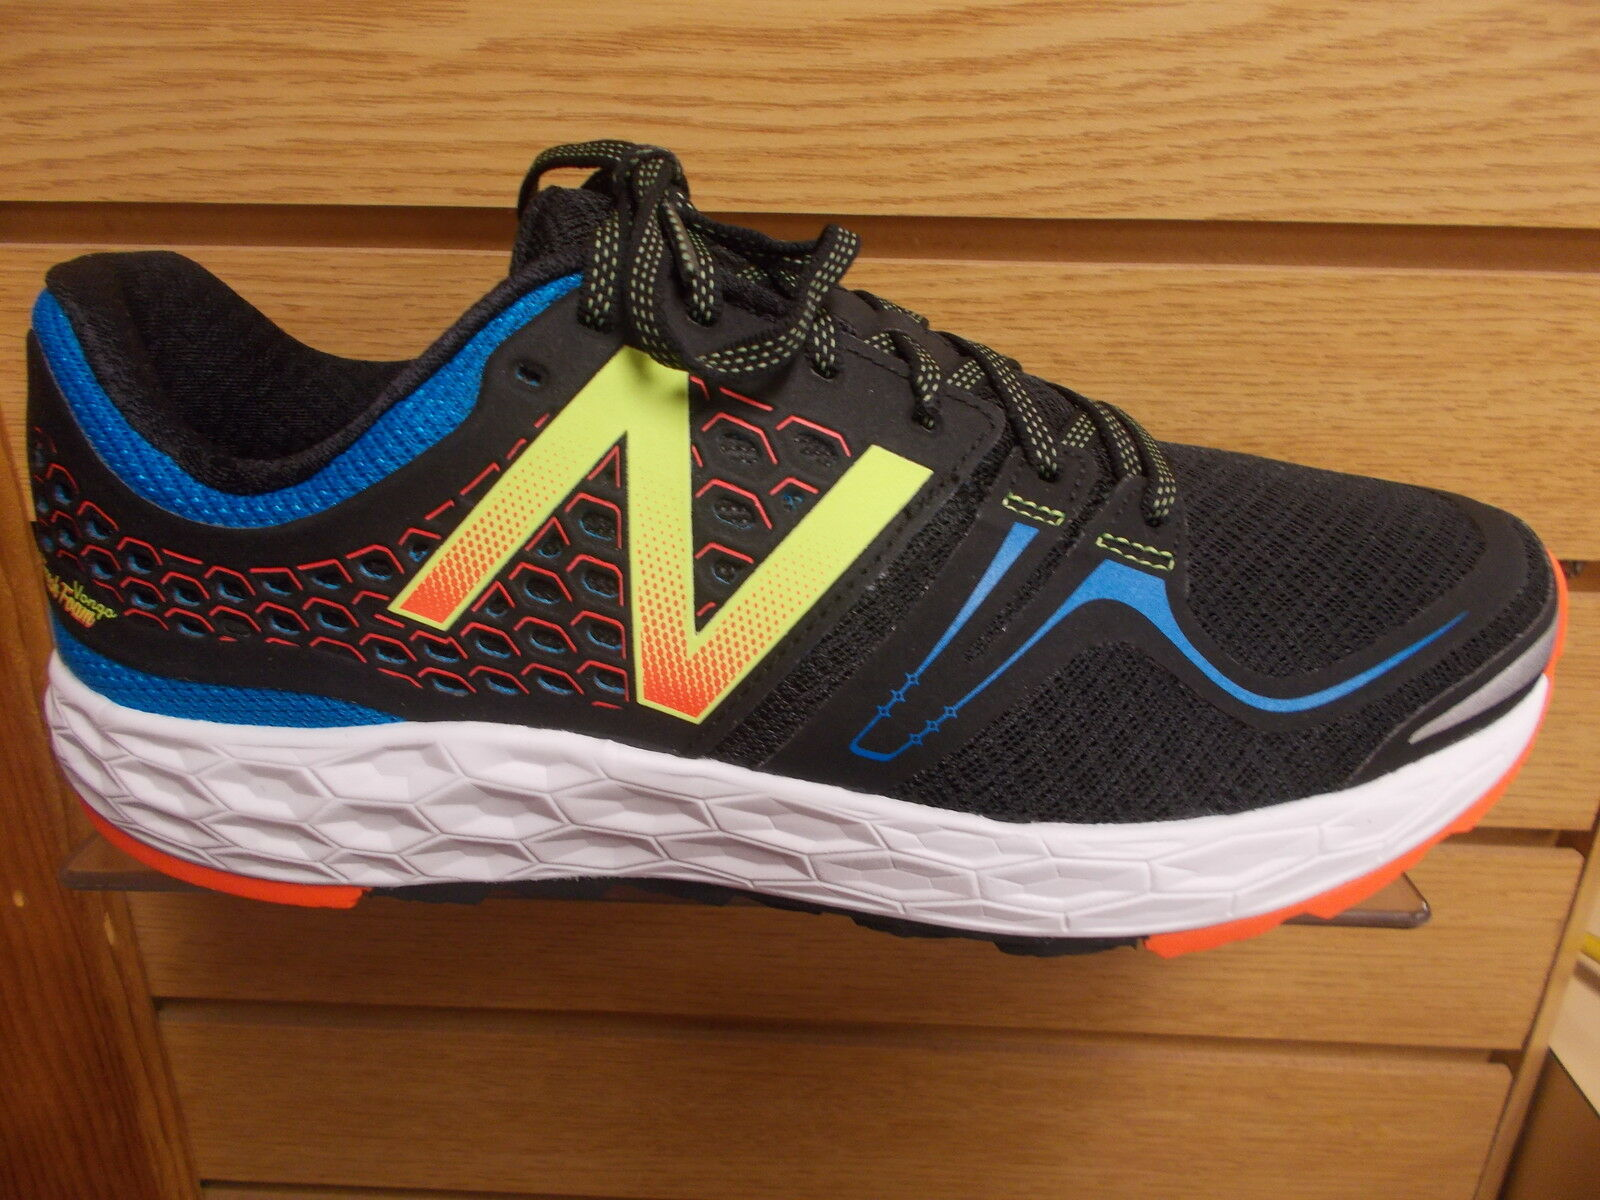 NEW BALANCE MEN'S VONGO RUNNING SHOES WIDE 2E WIDTH  NEW MULTIPLE SIZES